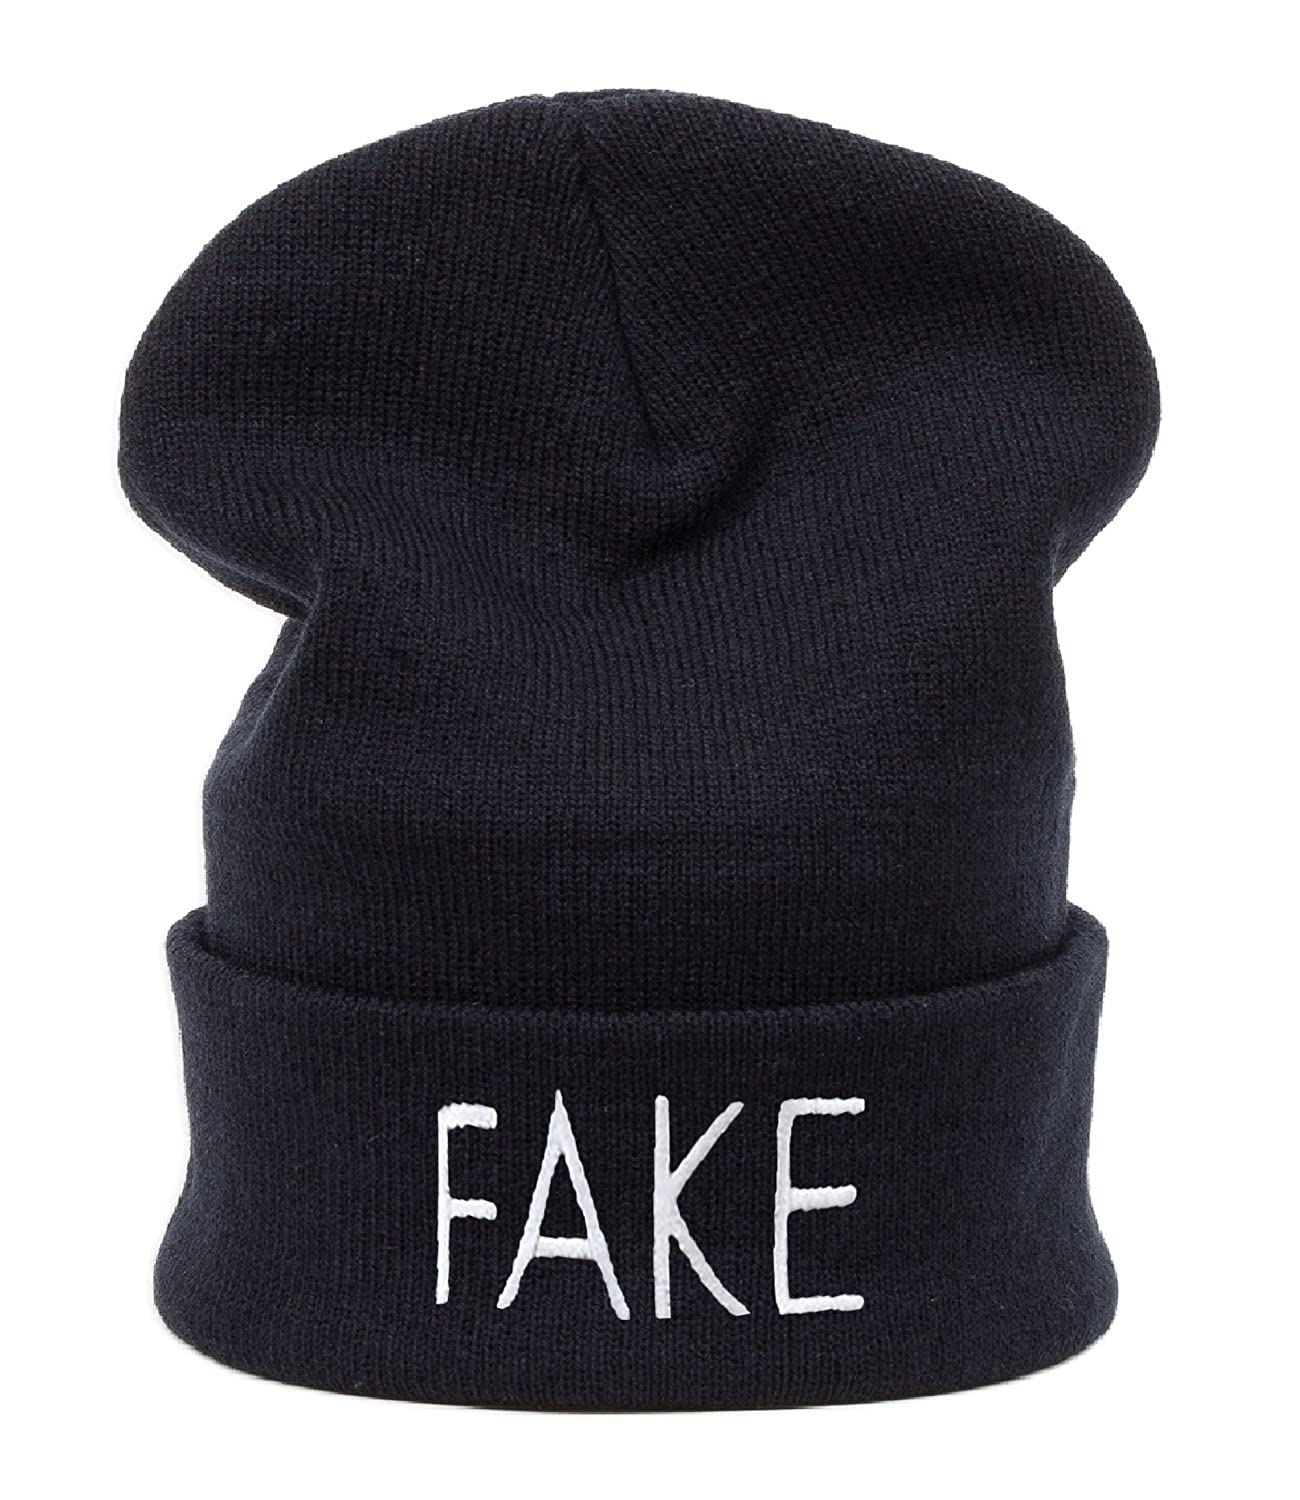 Beanie Mütze Damen Herren Bad Hair Day Easy Witch Trill Bastard Meow Swag Wasted DIE Fake Commes des 1994 HAT HATS, Morefazltd (TM) (FAKE)